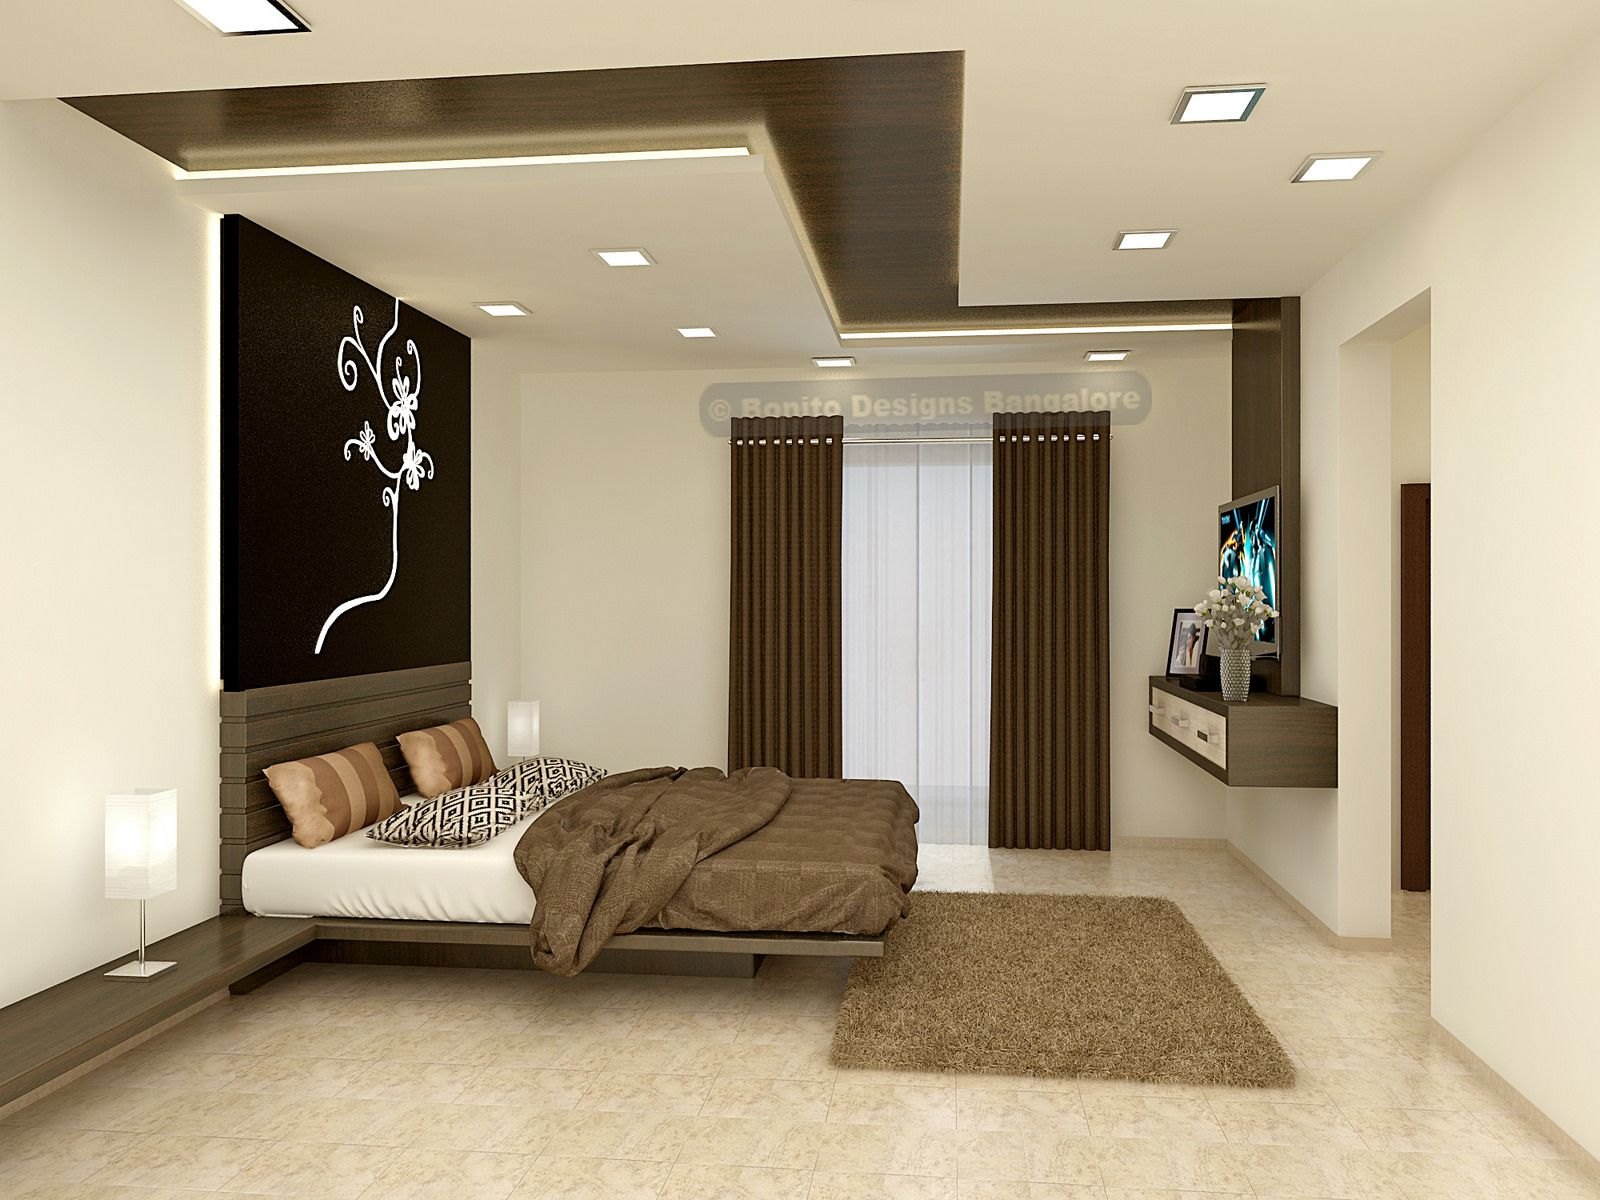 sandepmbr 1 | Ceilings | Pinterest | Ceilings, Bedrooms ...